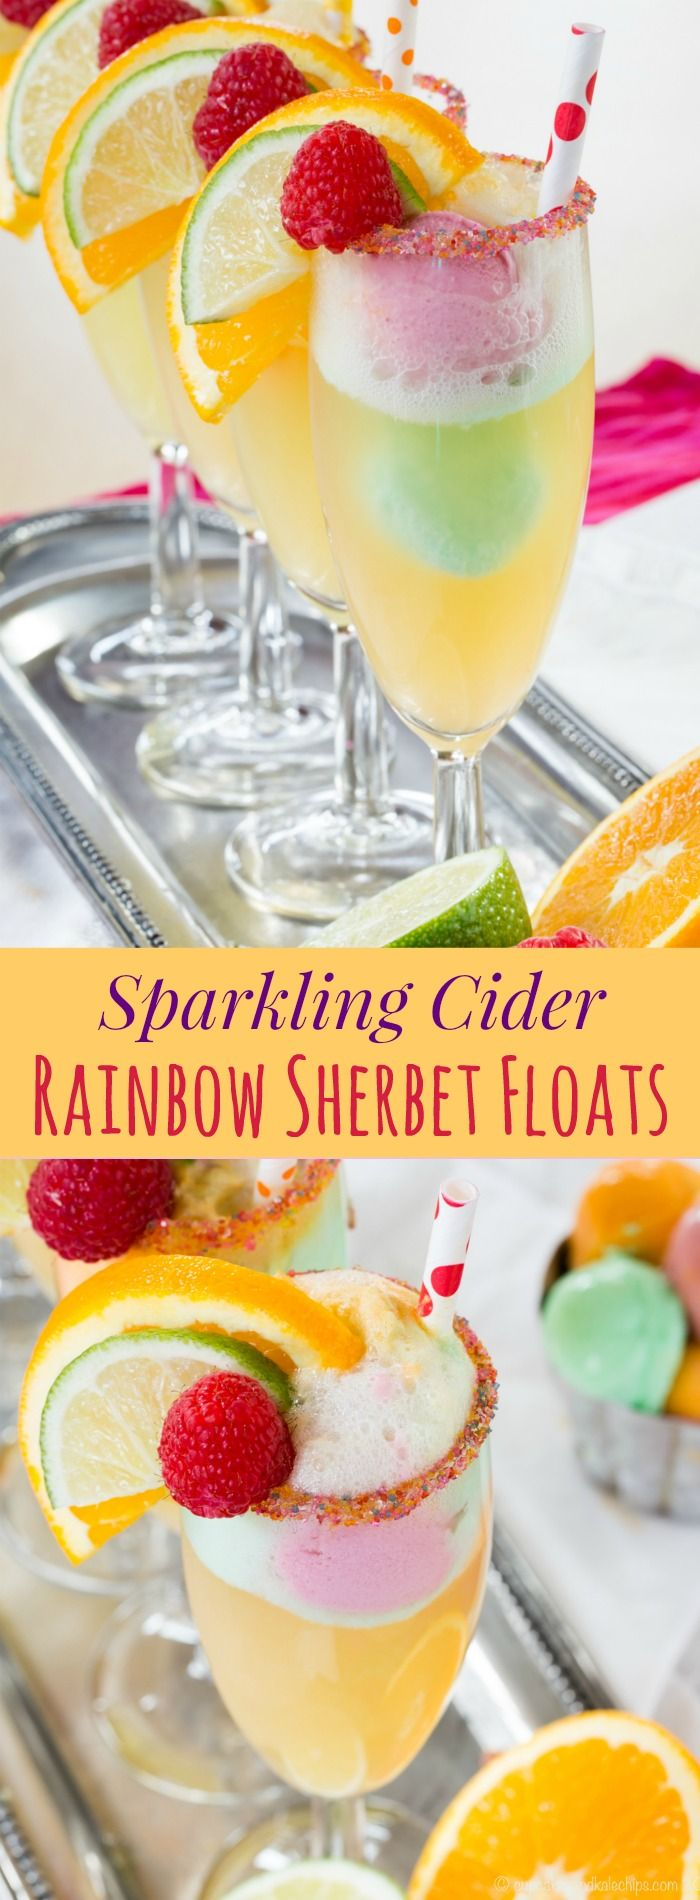 Sparkling Cider Rainbow Sherbet Floats - a fun mocktail or dessert the kids will love for Valentine's Day, St. Patrick's Day, or a special birthday